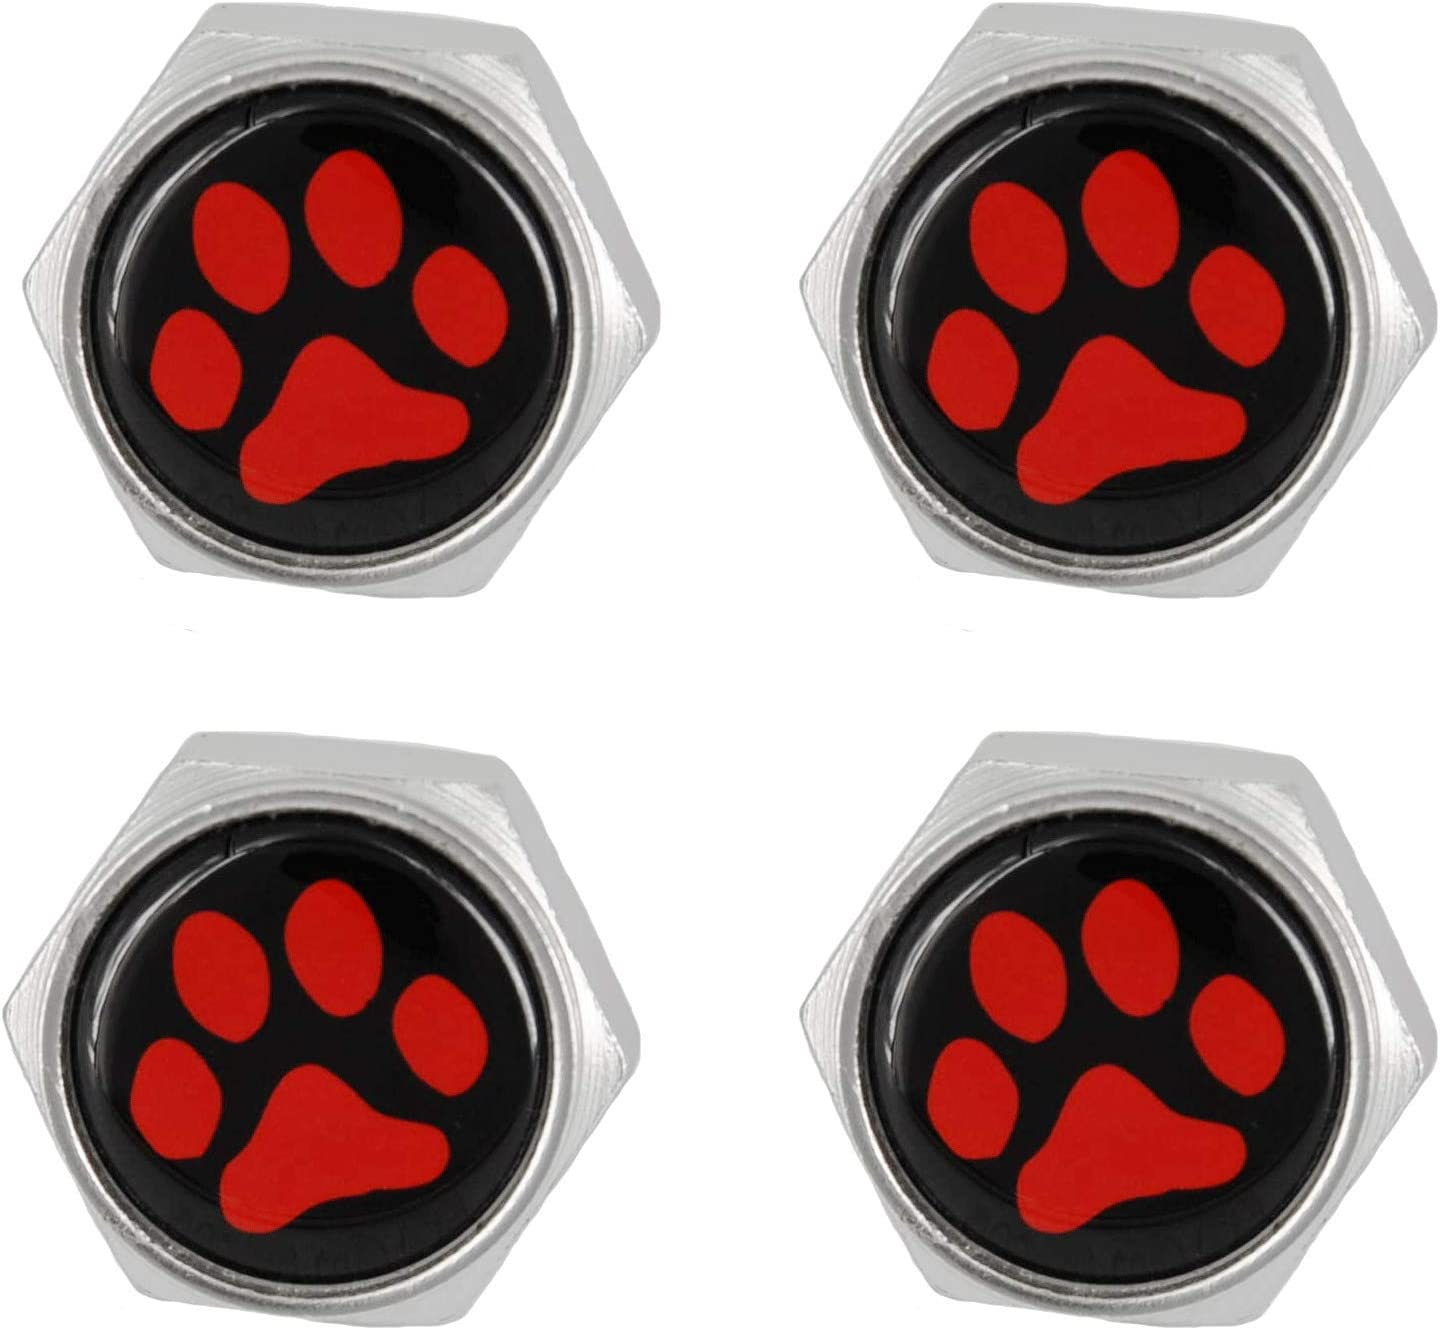 Pack of 8 Black, Black Paw Print White Base Cutequeen Little License Plate Frame Bolts Screws Metal